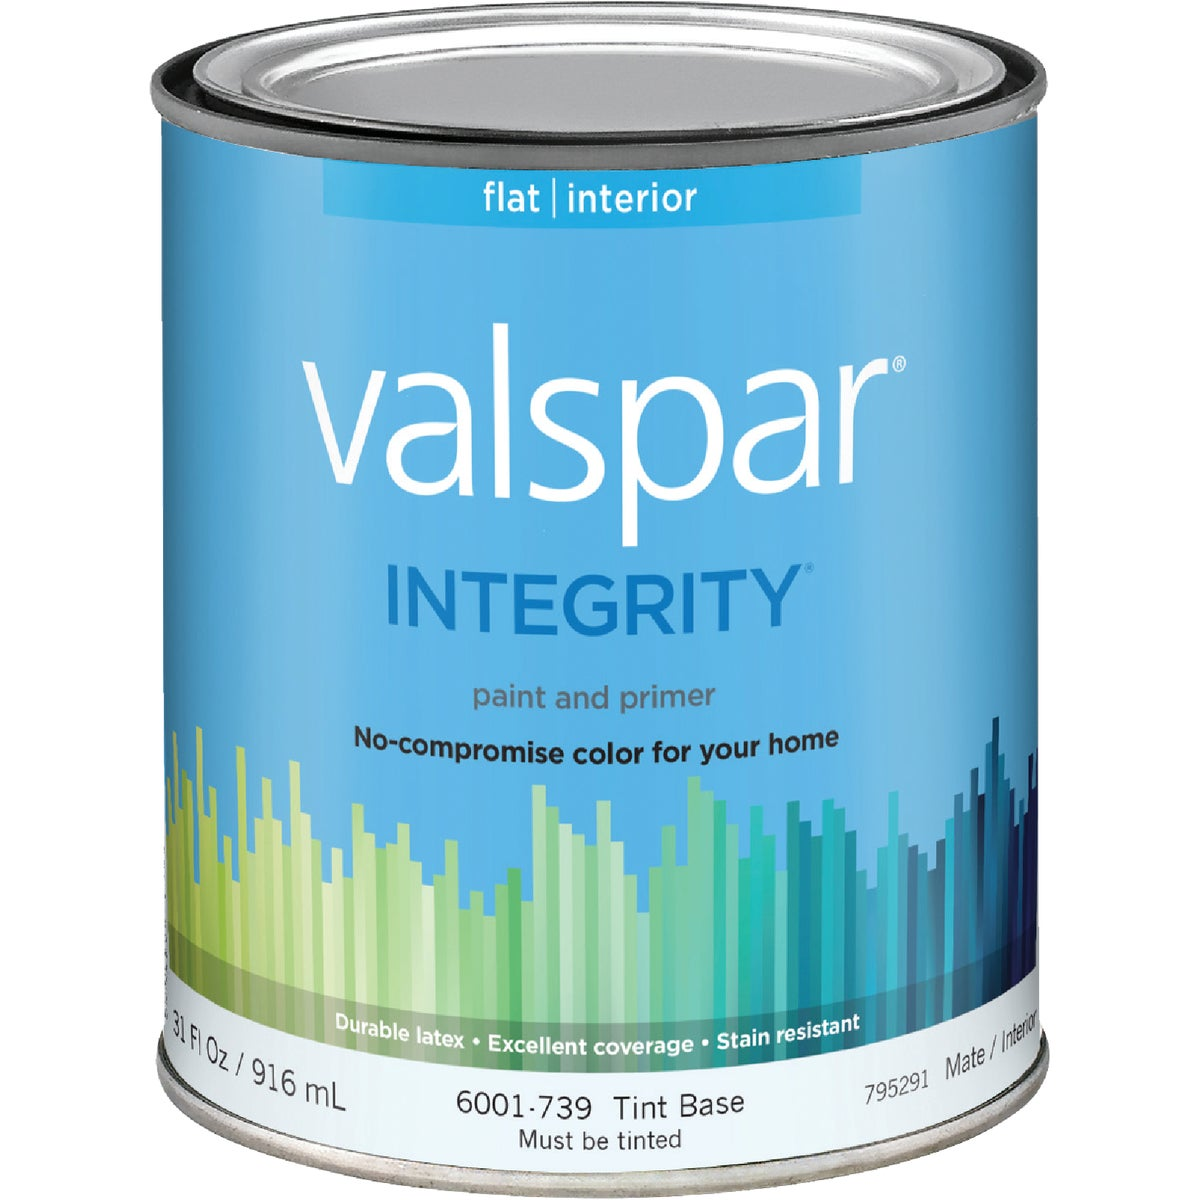 INT FLAT TINT BS PAINT - 004.6001739.005 by Valspar Corp